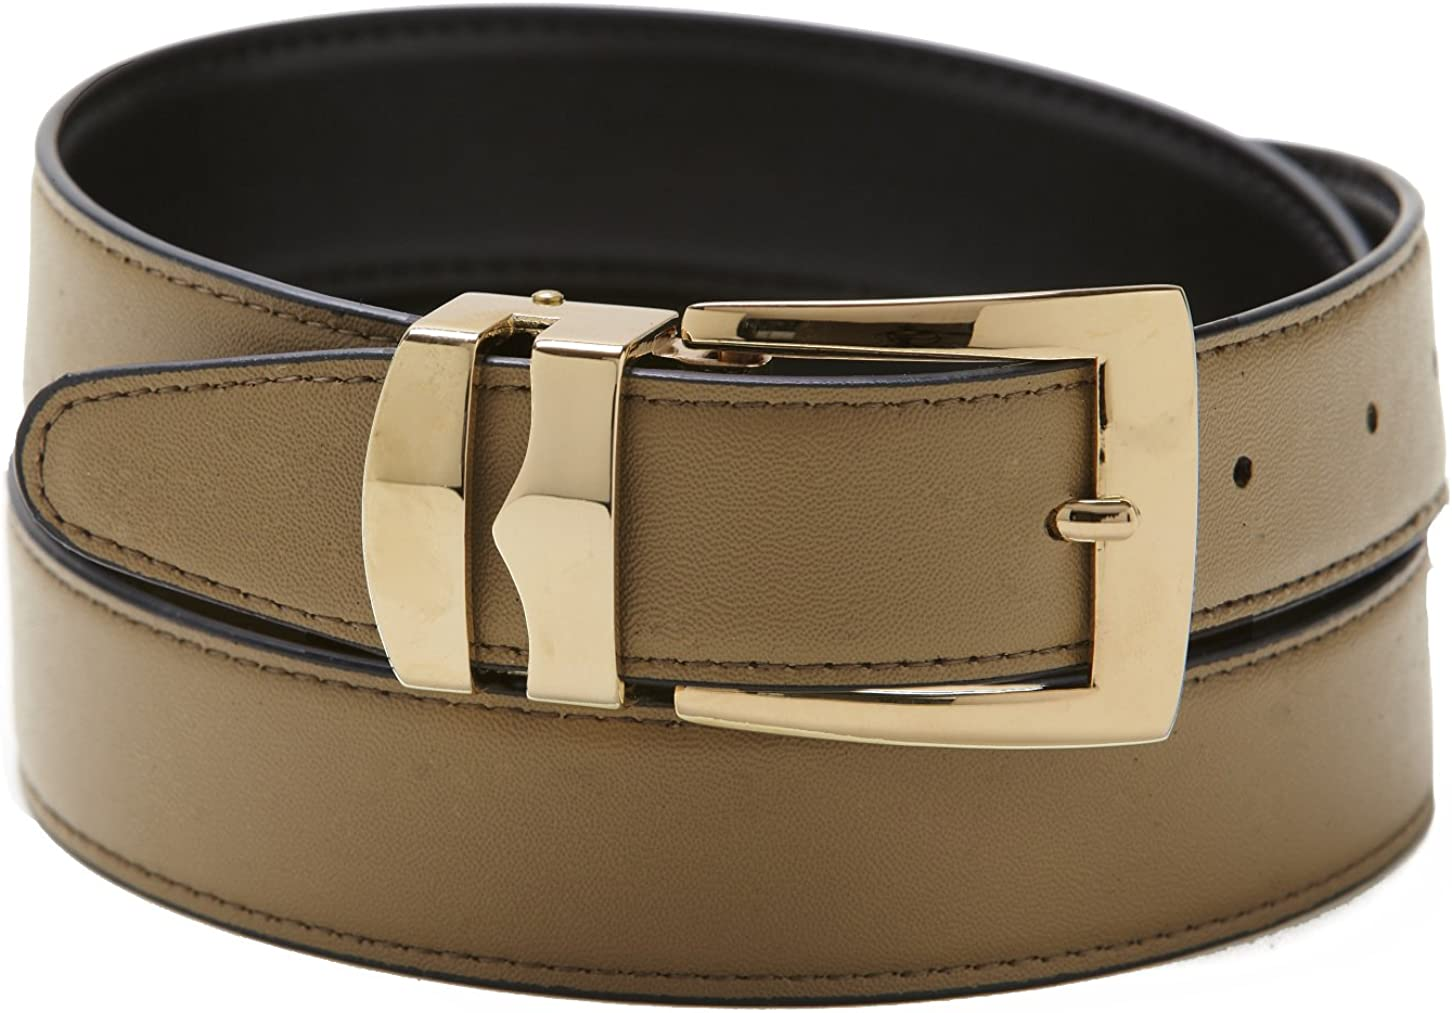 Reversible Belt Bonded Leather with Removable Gold-Tone Buckle TAUPE//Black